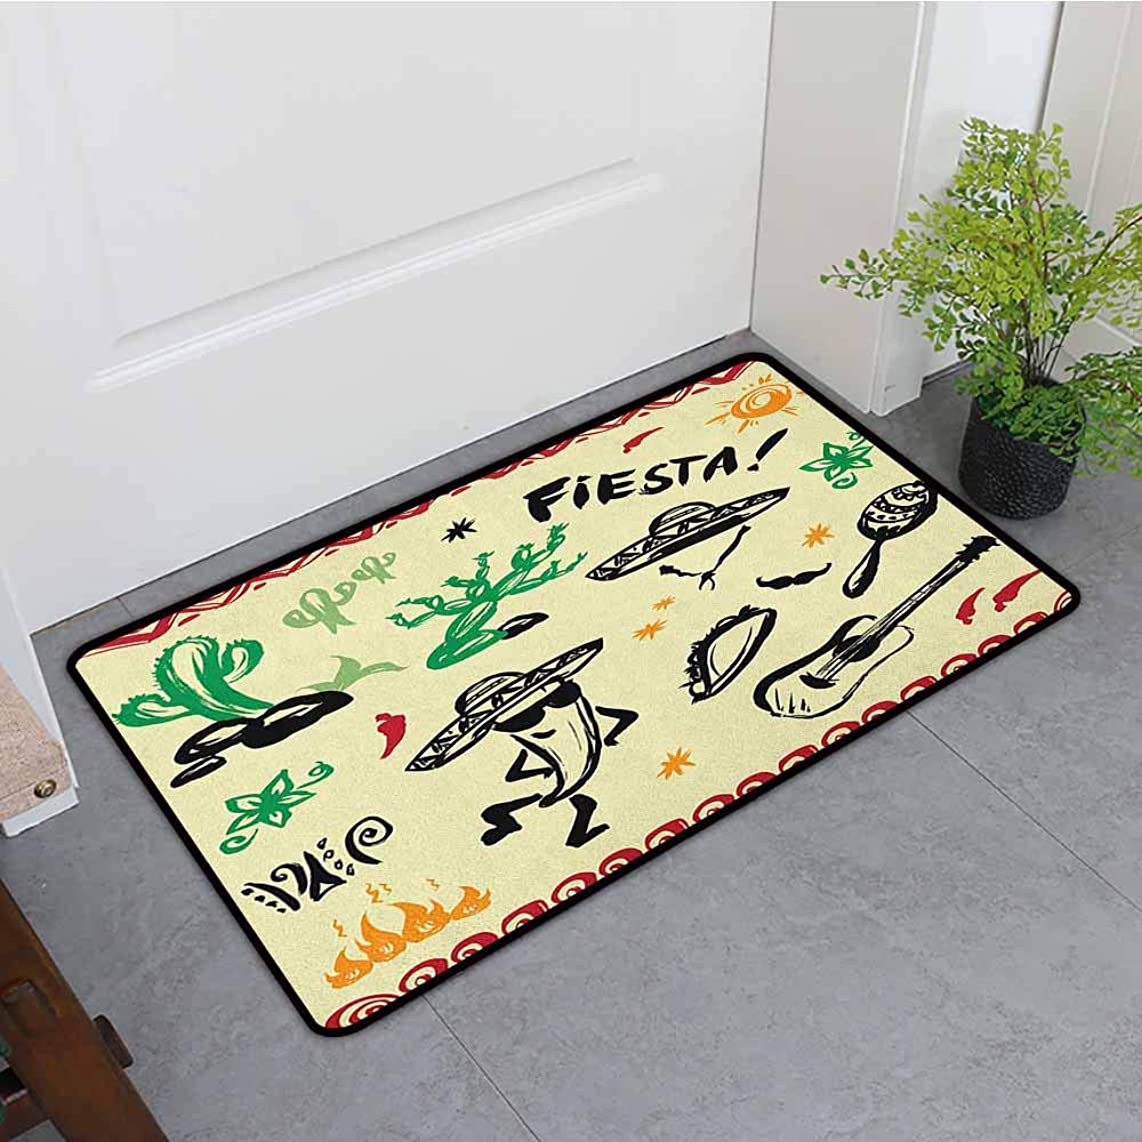 ONECUTE Modern Doormat,Mexican Popular Hispanic Cartoon Objects with Fiesta Taco Guitar Cactus Plant Nachos Print,Machine-Washable/Non-Slip,31